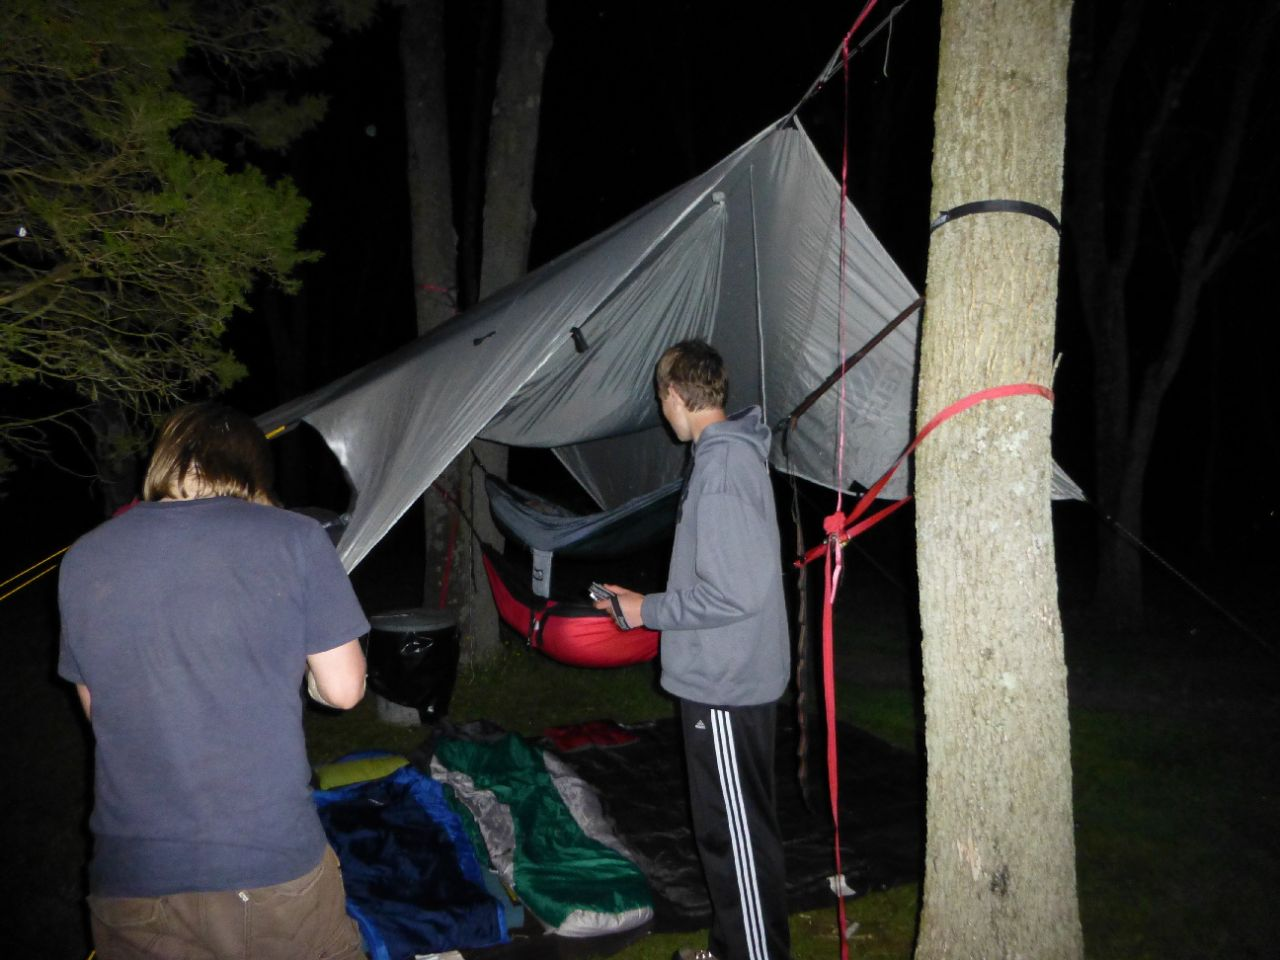 Hammocks Are Catching On In My Scout Troop